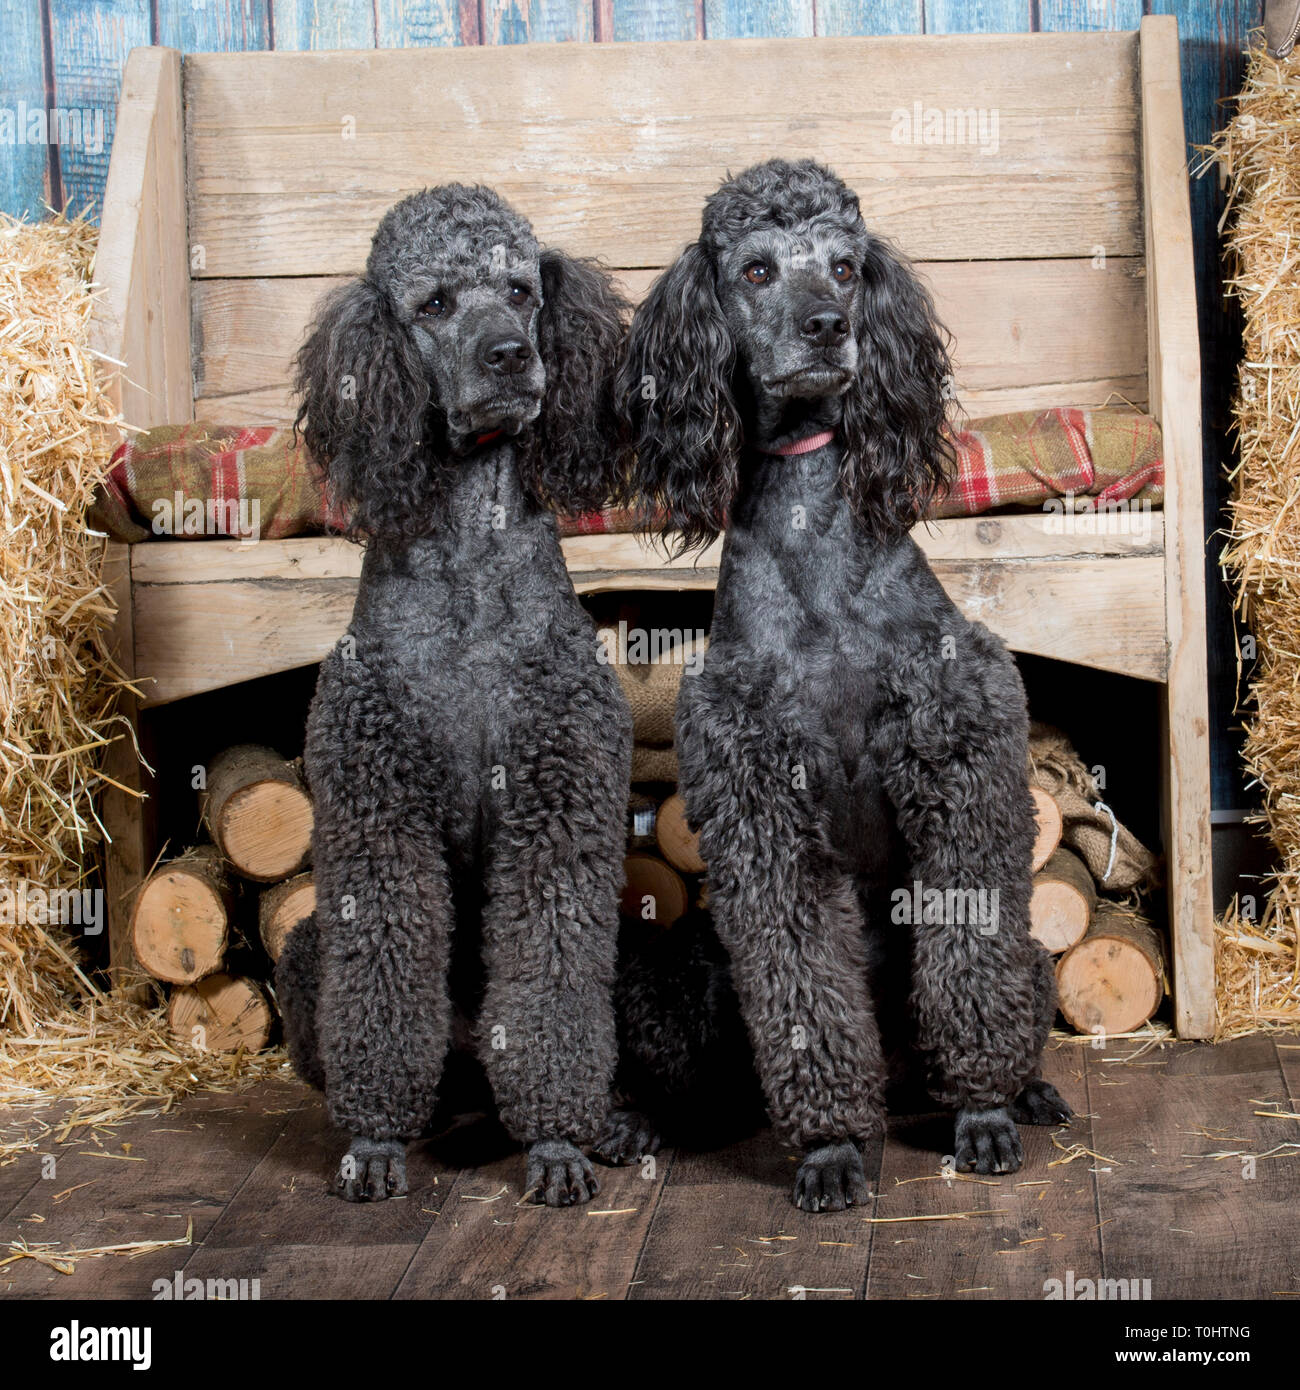 two standard poodles - Stock Image